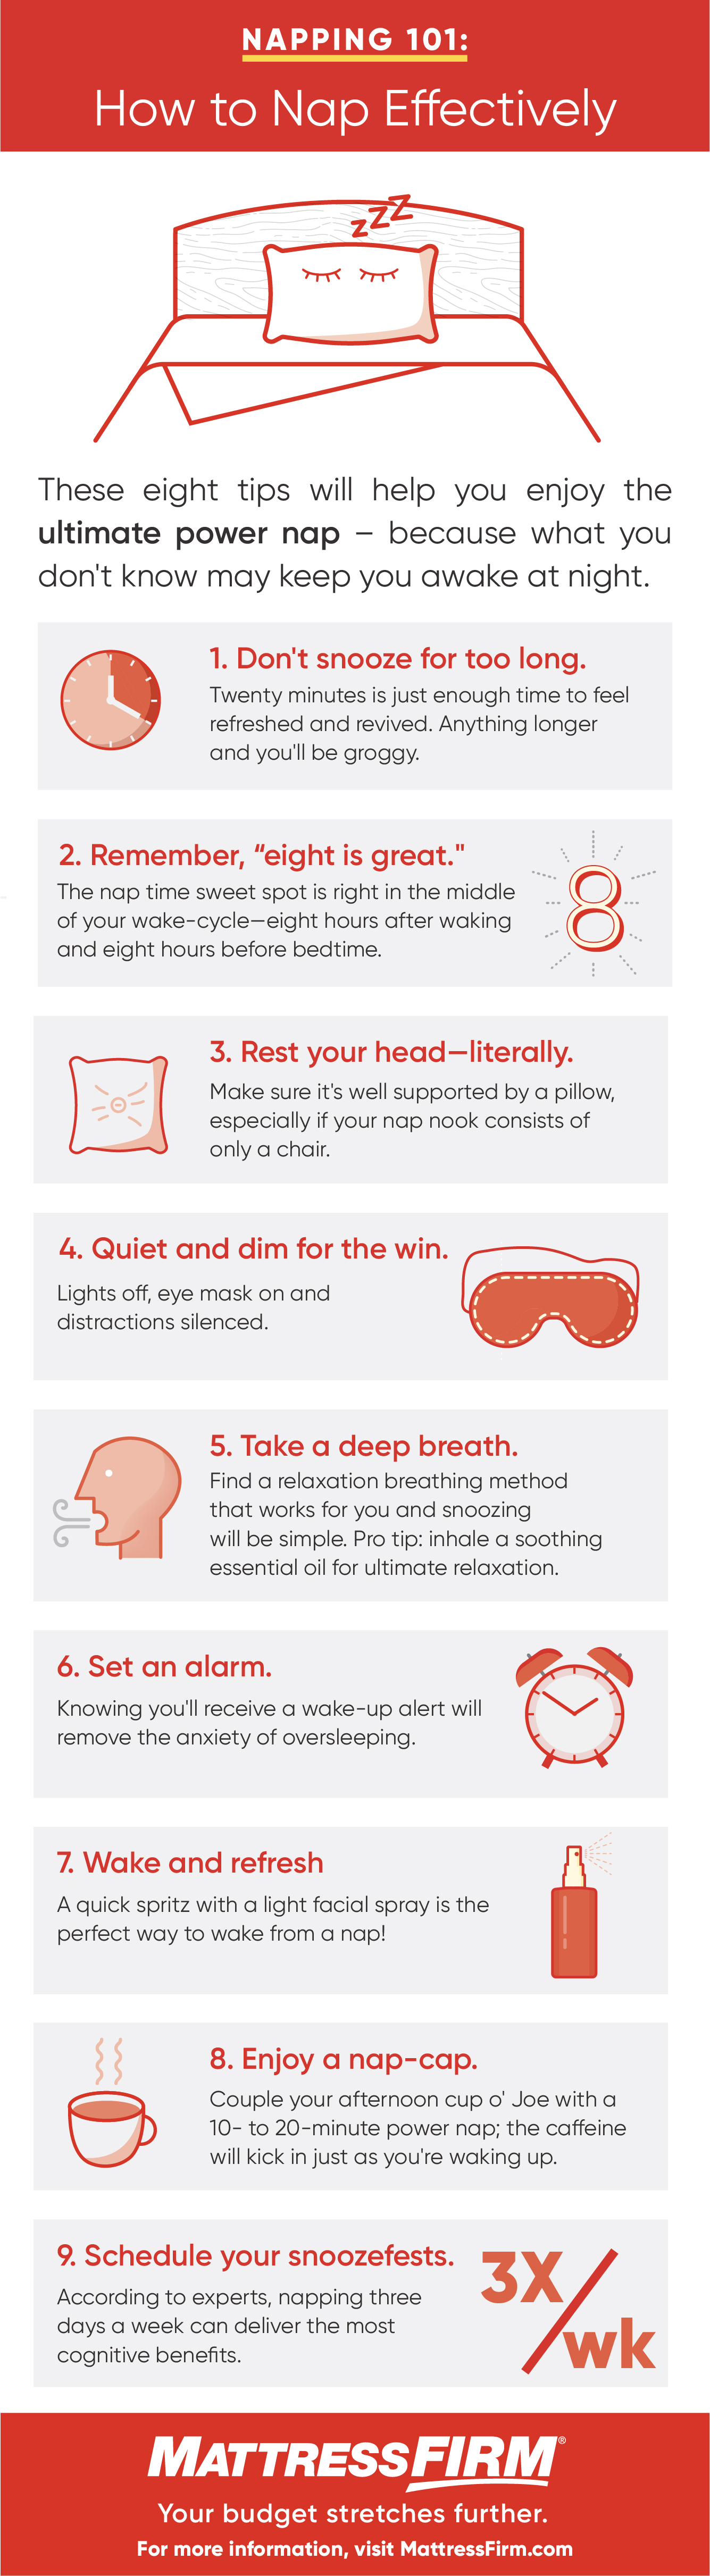 napping, is napping good for you, benefits of napping, power nap, is napping healthy